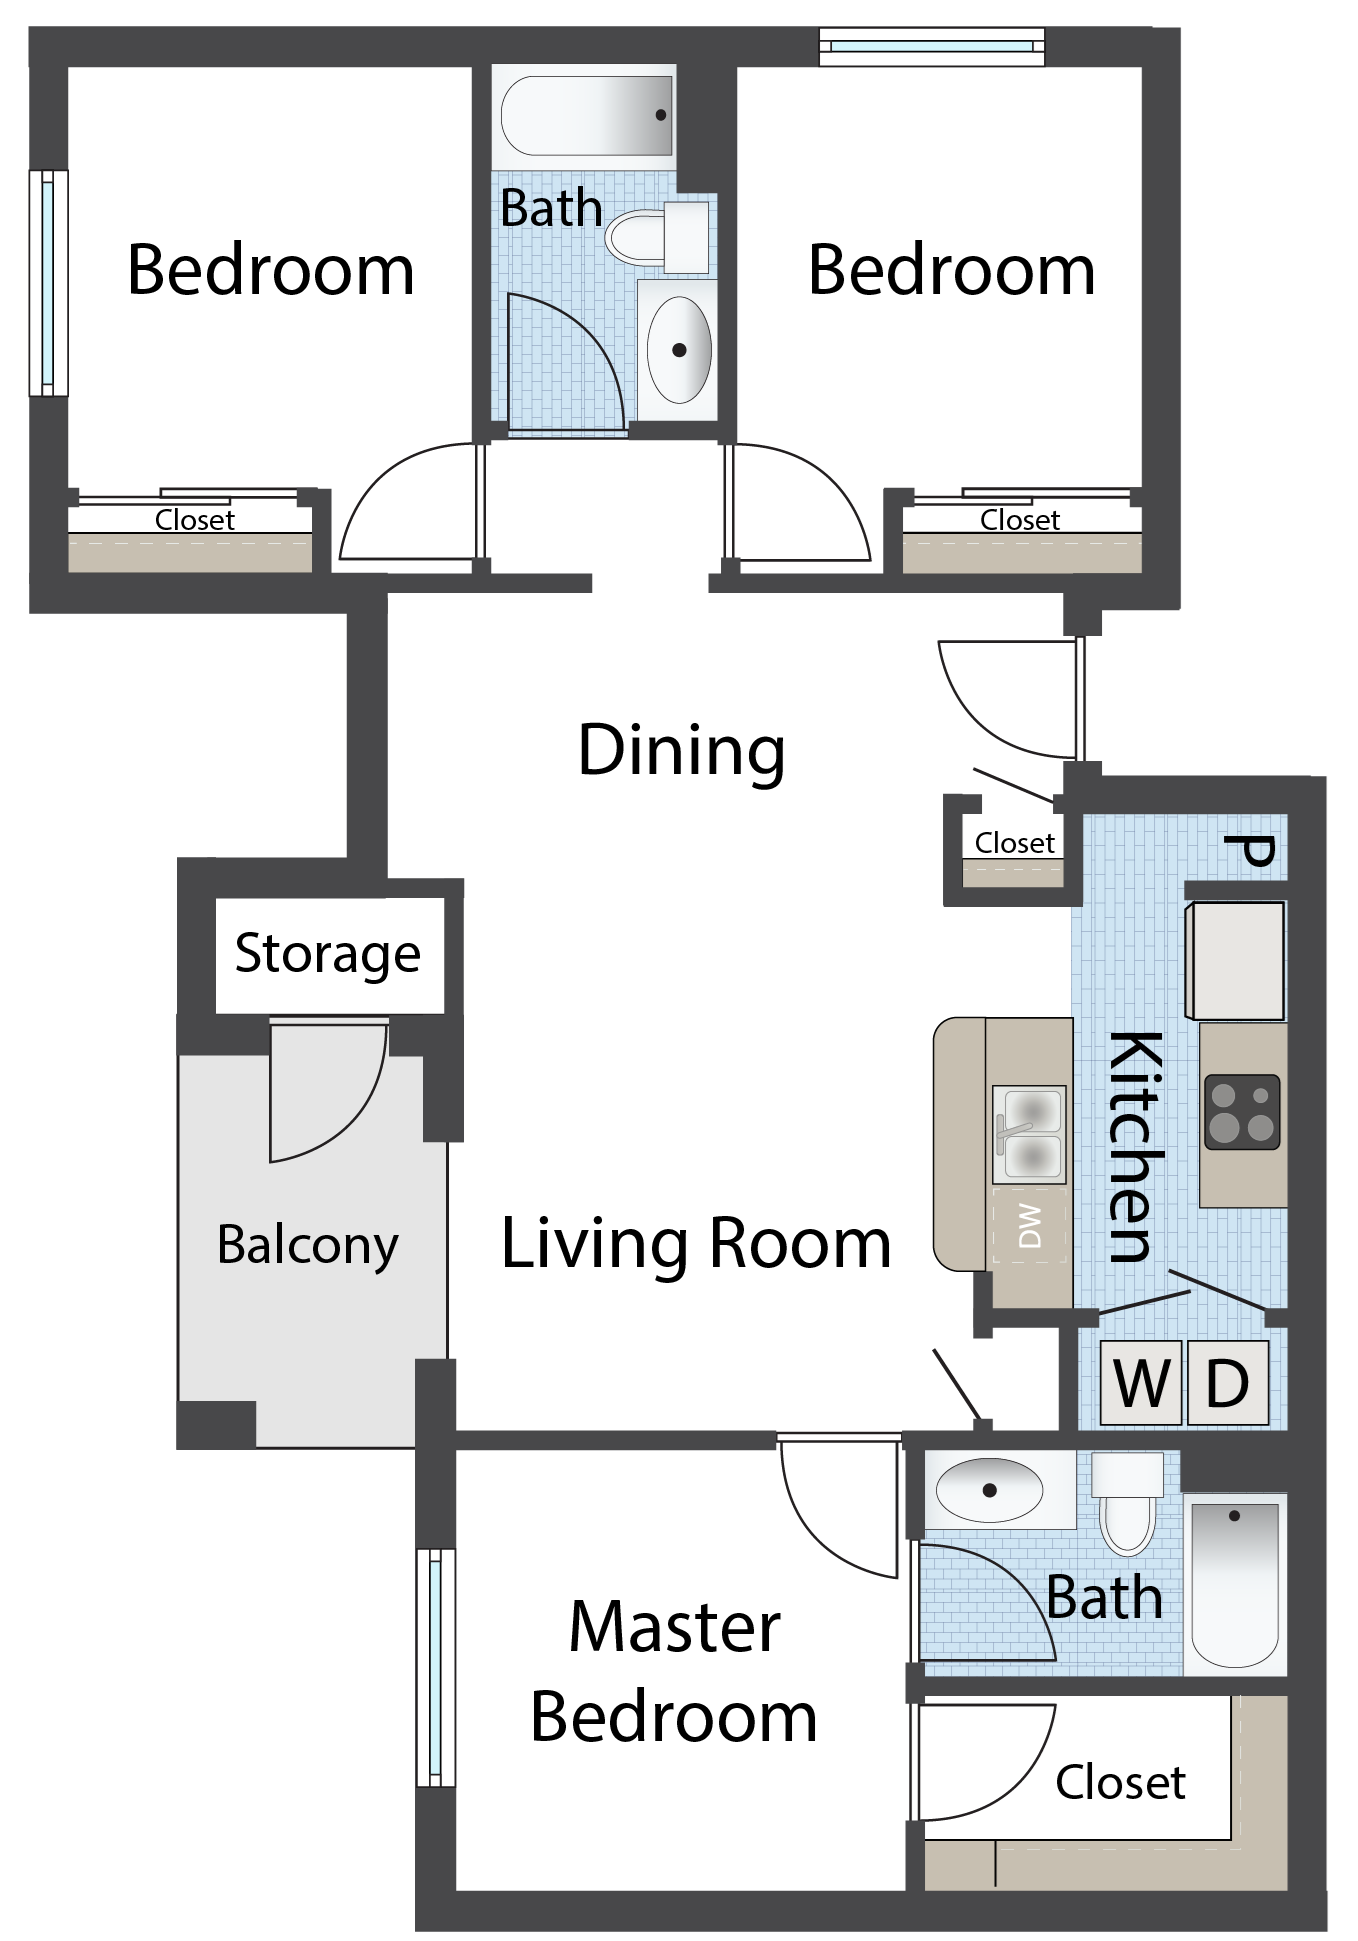 Floor Plans Of Raintree Apartments I And Ii In Clovis Nm